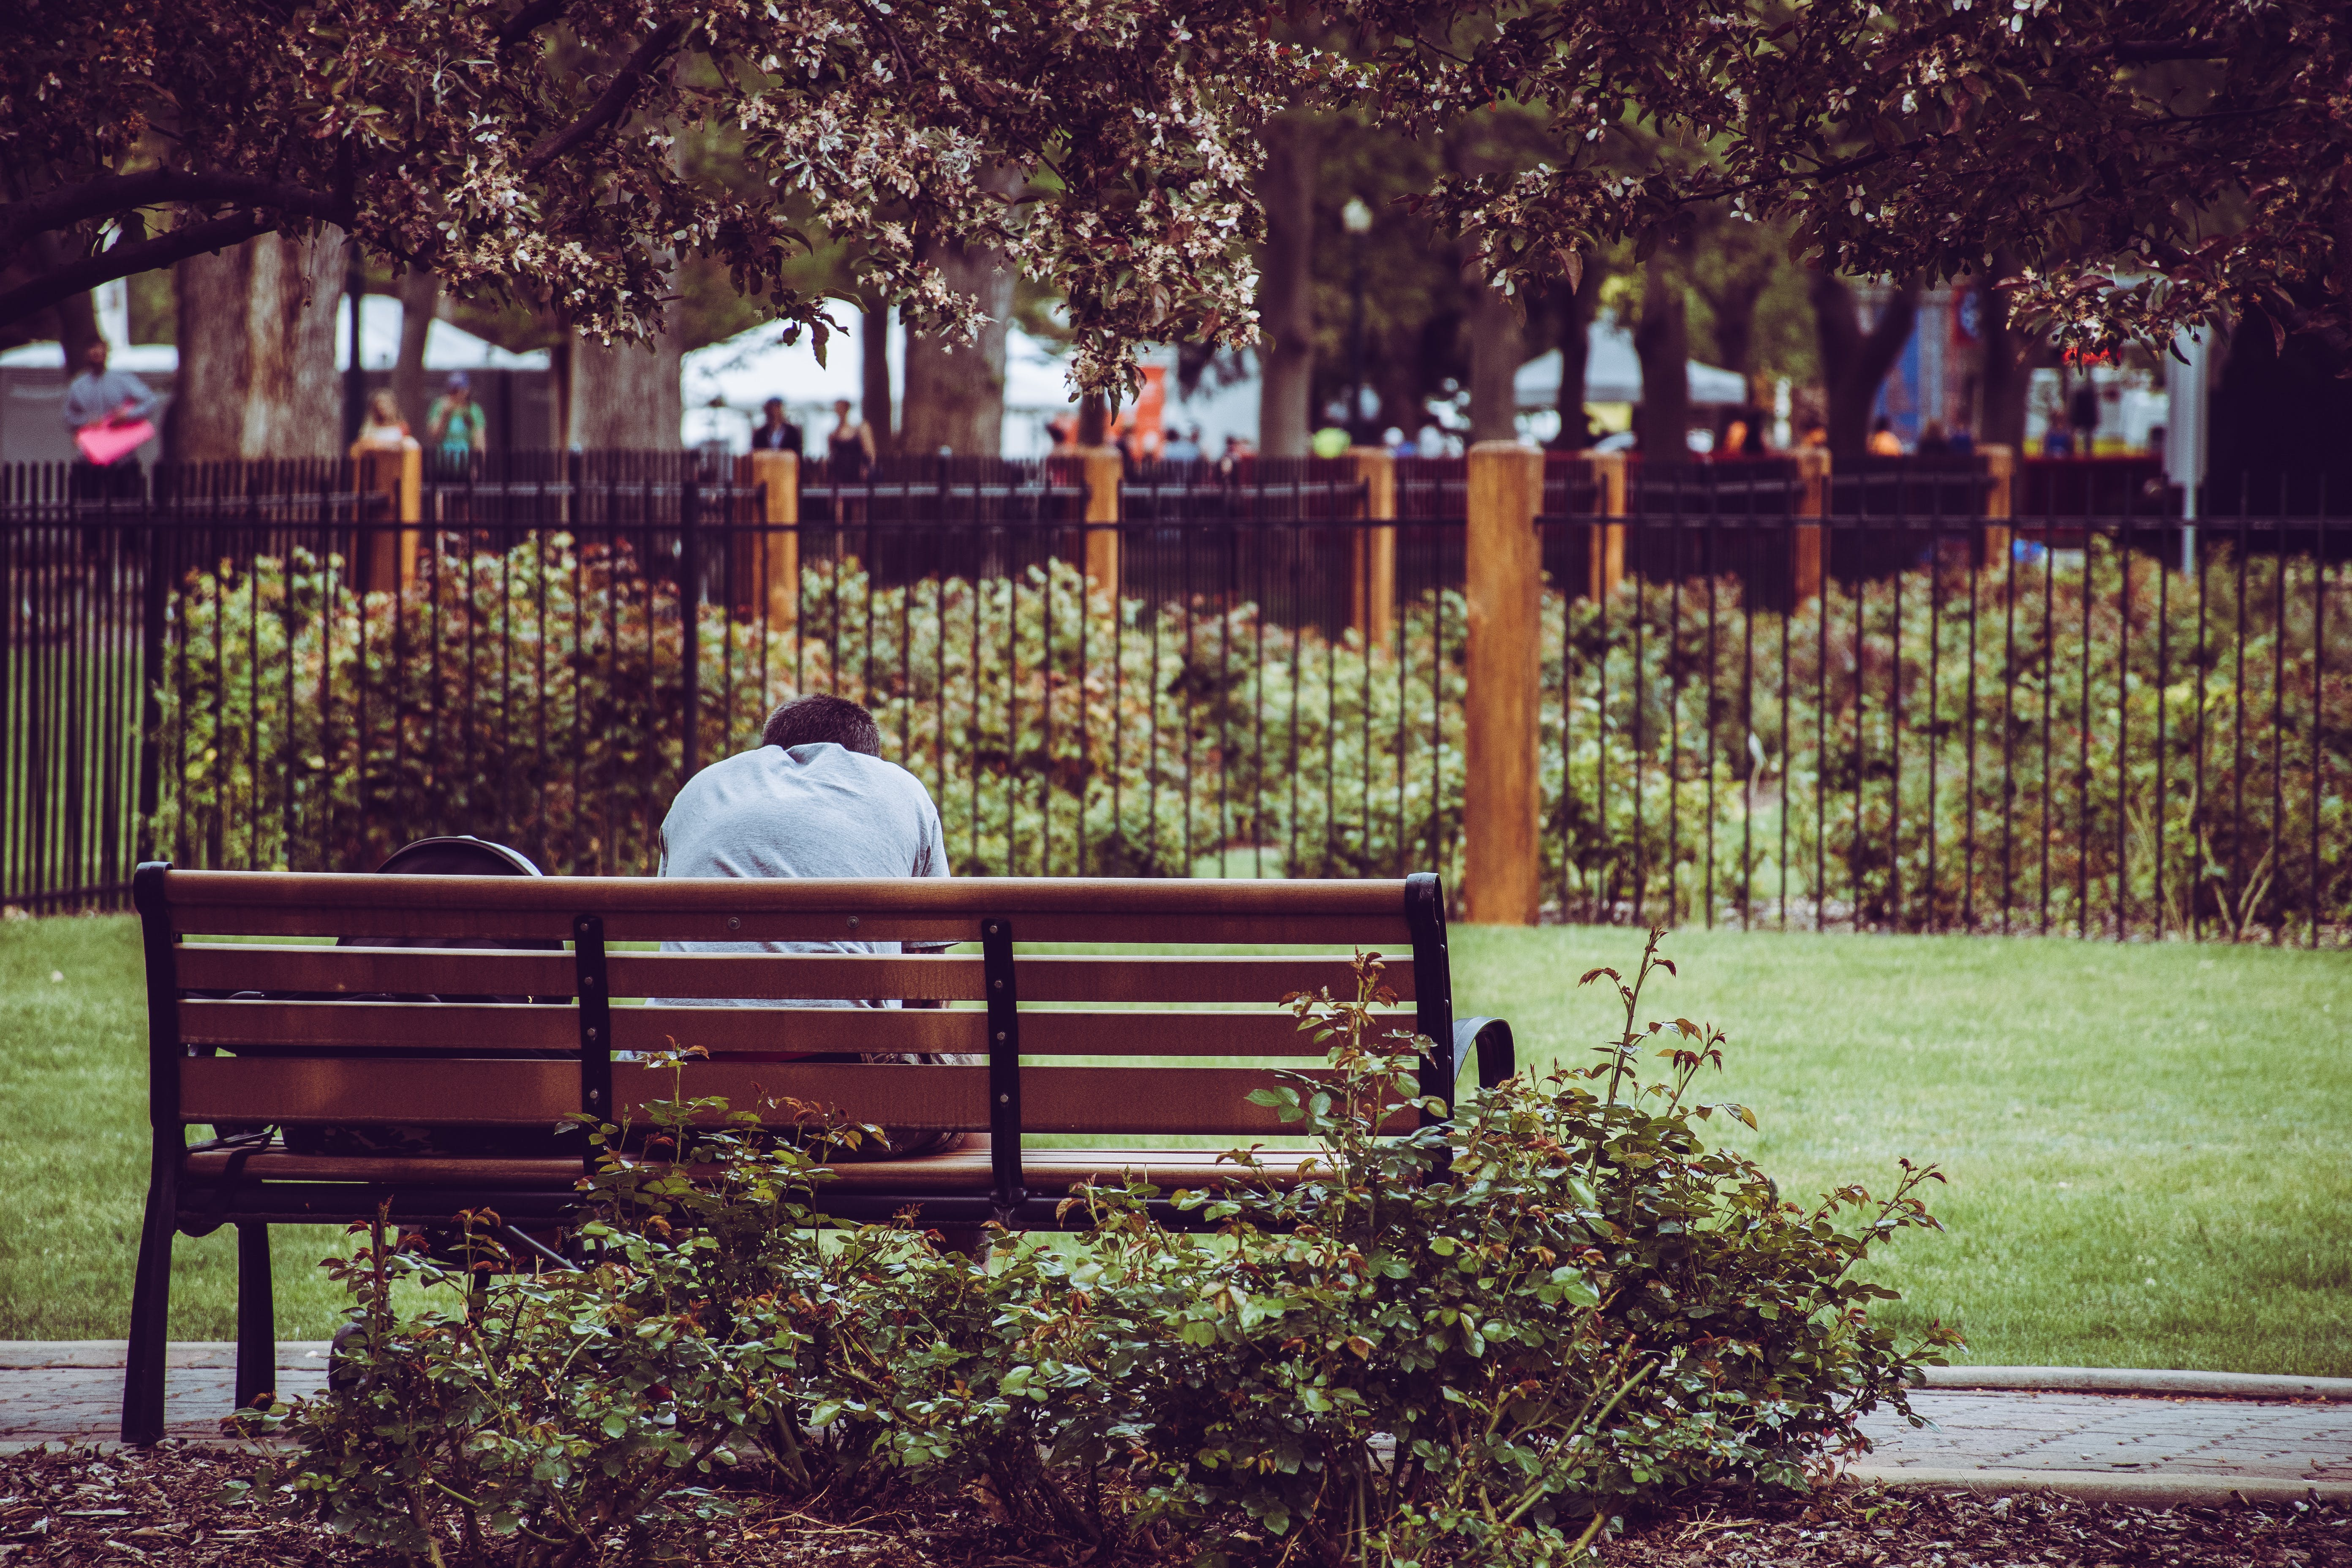 Photo Of Person Sitting On Brown Bench